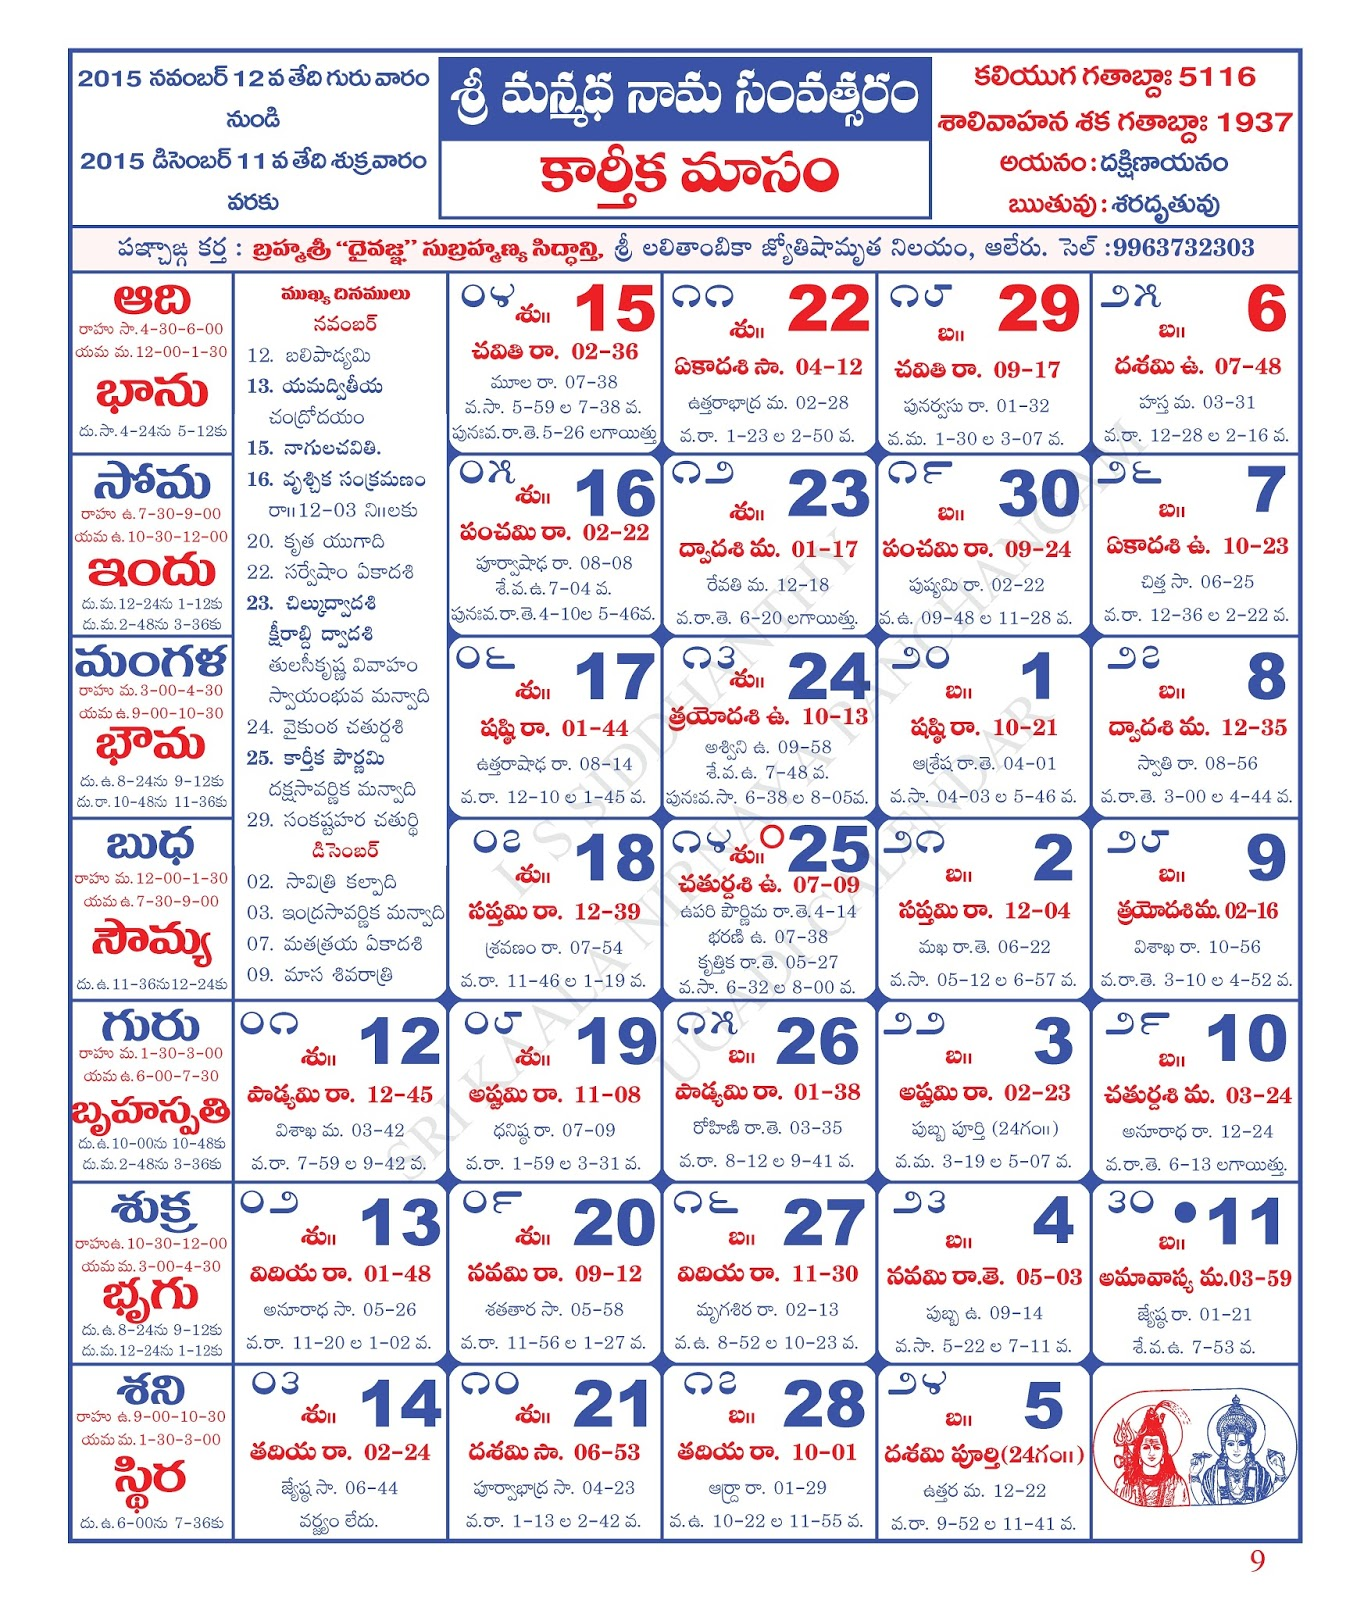 2015 Calander And Panchangam | Search Results | Calendar 2015